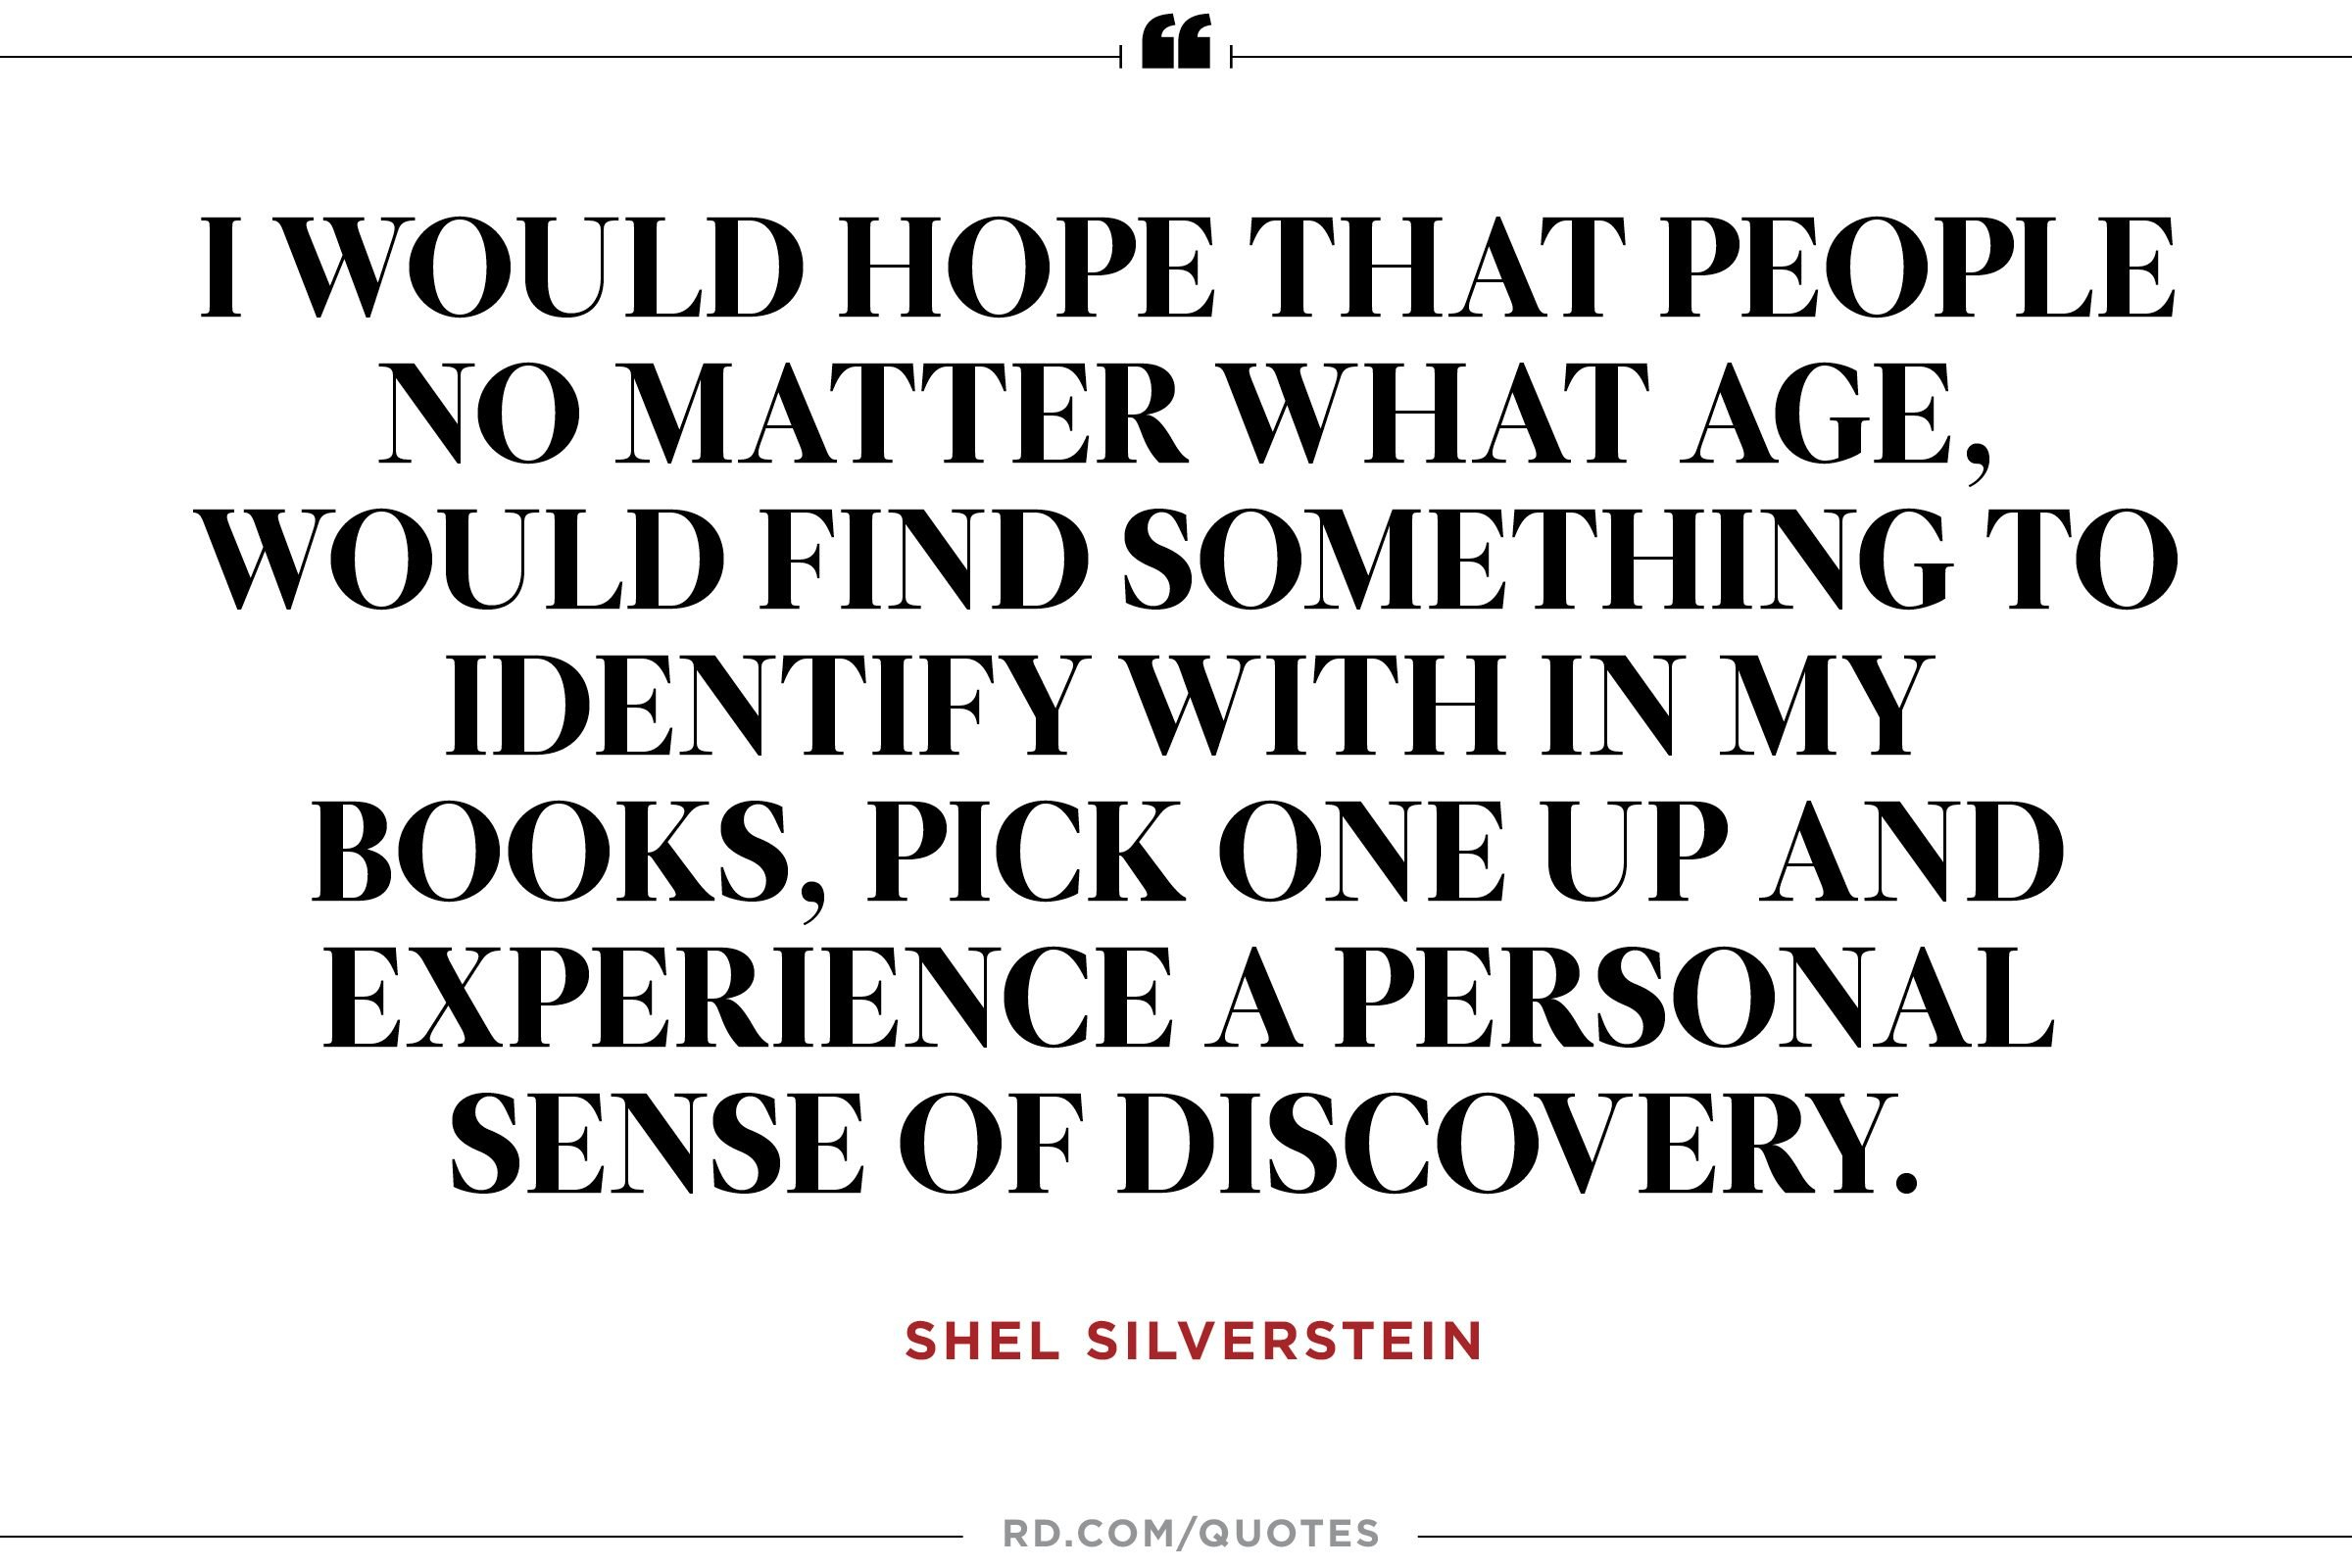 Inspirational Quotes For Young Adults 11 Motivational Quotes From Shel Silverstein  Reader's Digest